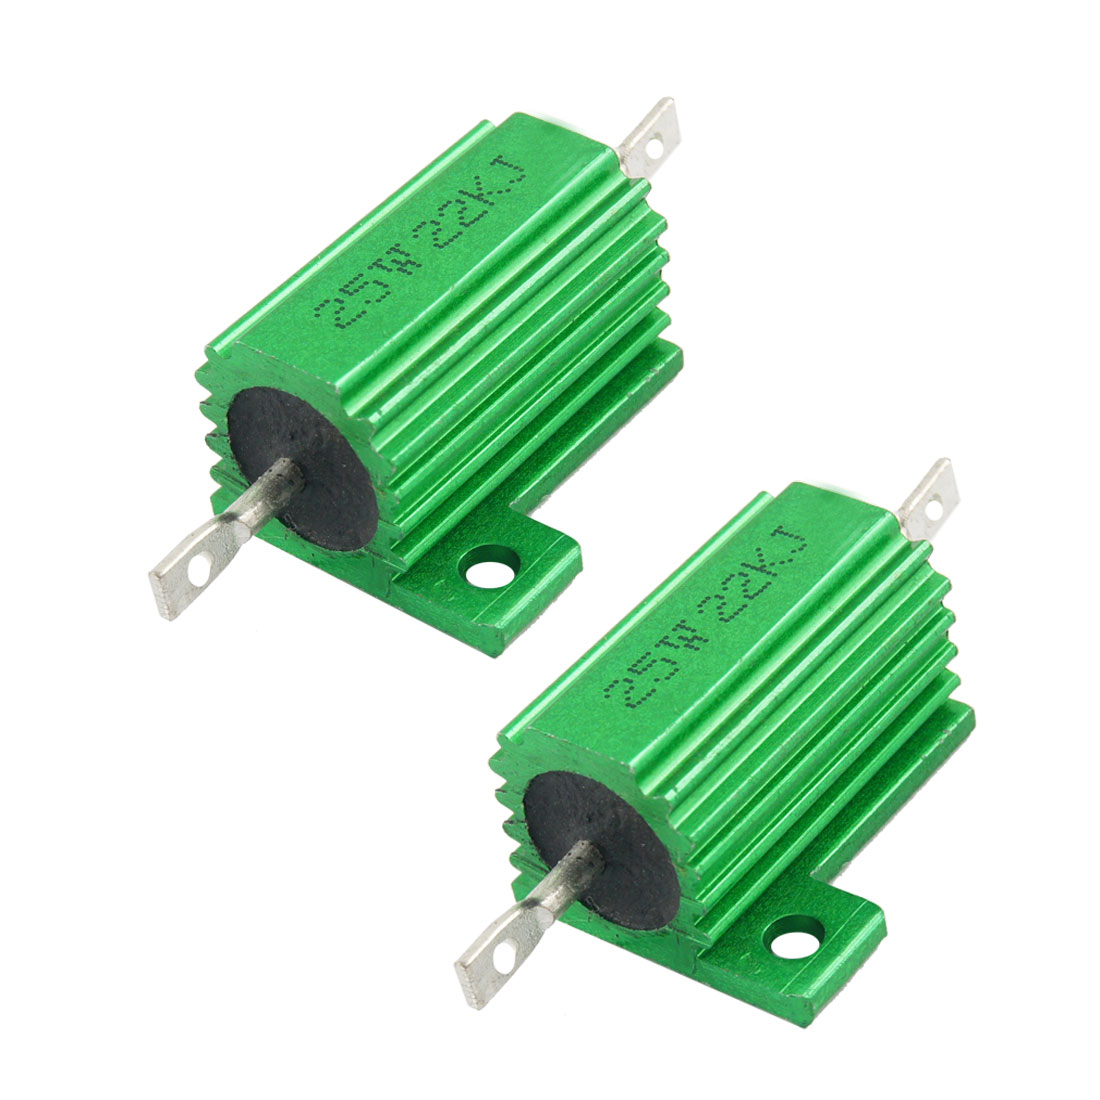 25W 22K Ohm Green Aluminum Housed Wirewound Resistors 2 Pcs